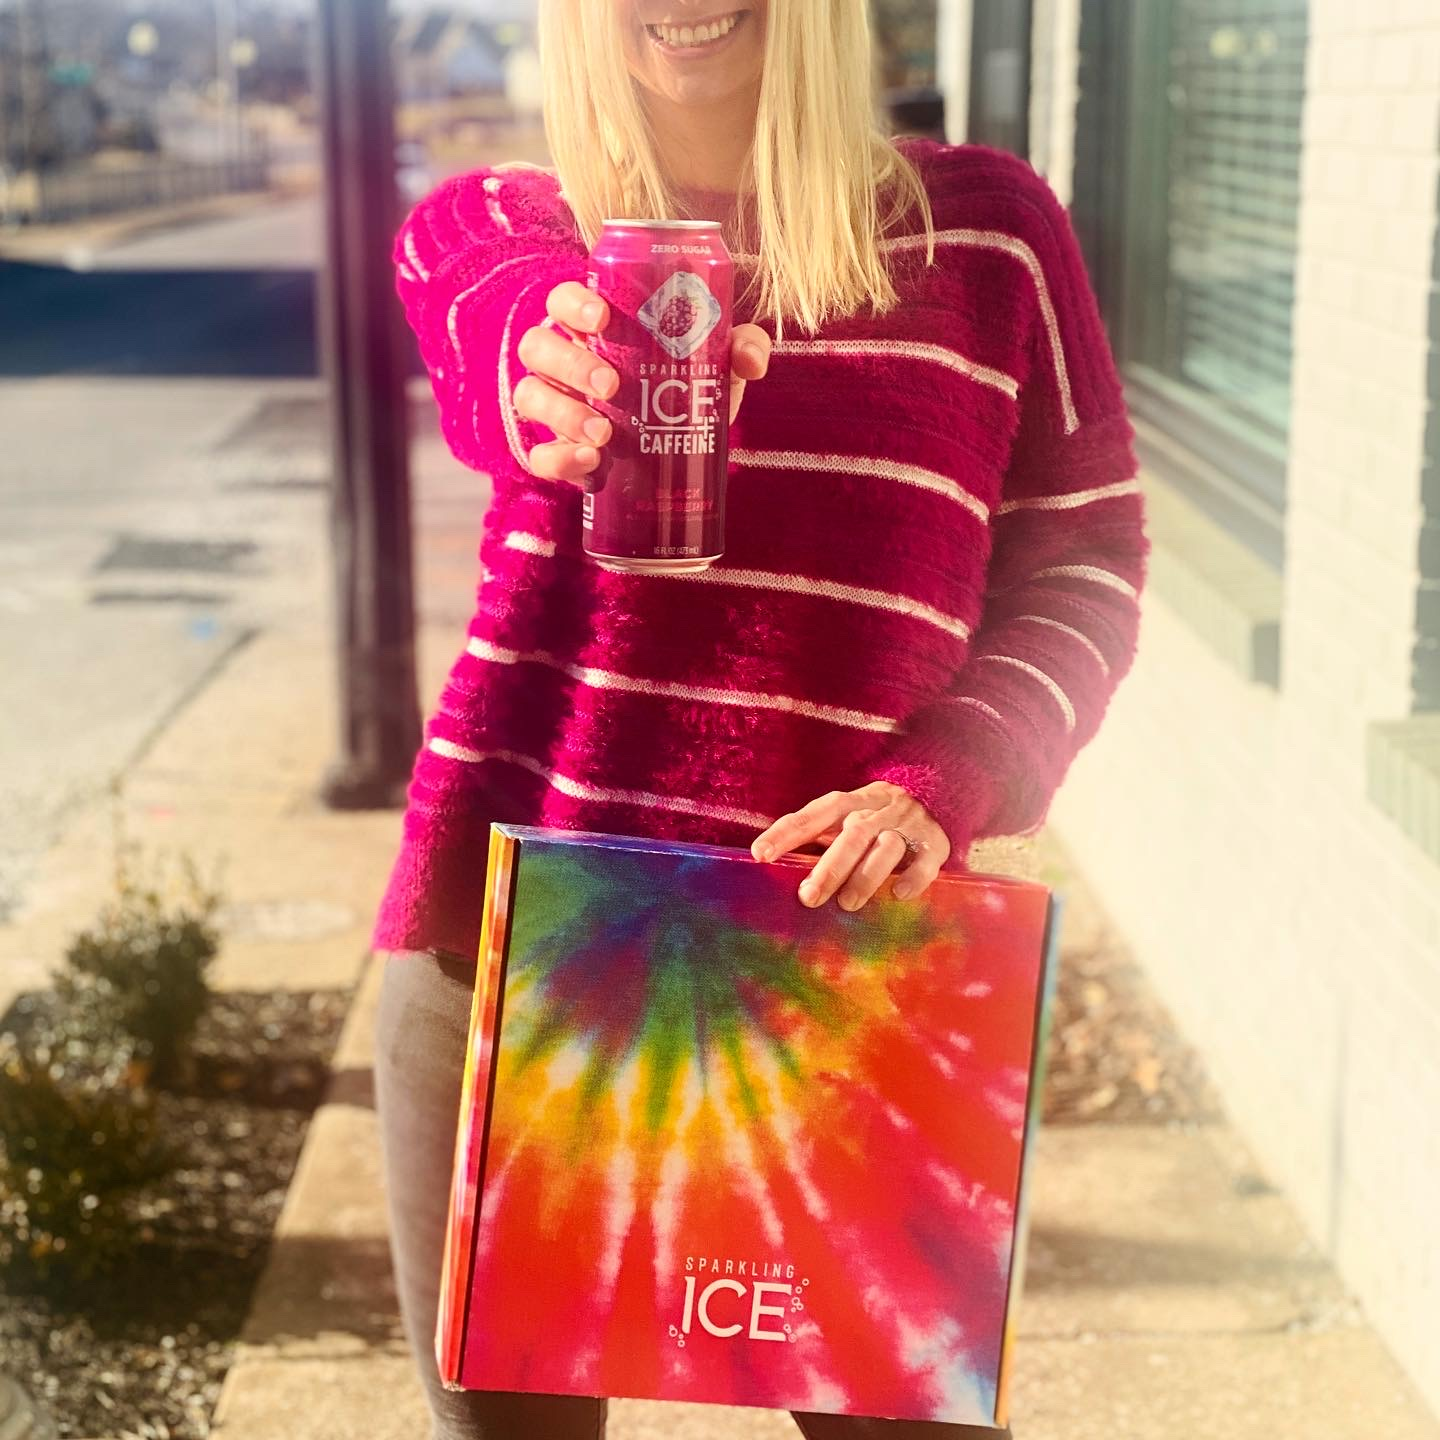 Sparkling-Ice-+Caffiene-Product-Launch-Box